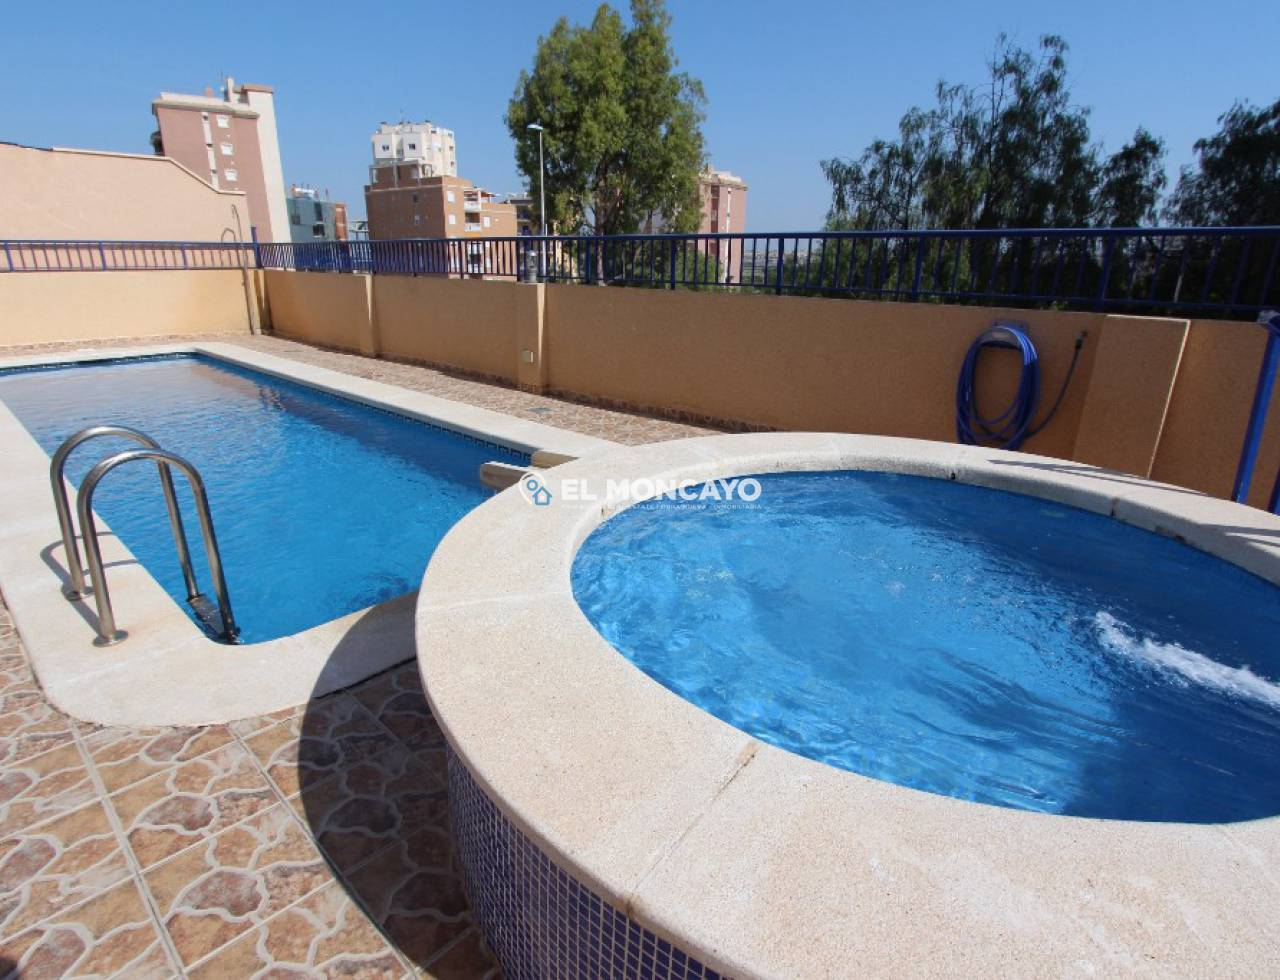 Appartement te koop in Guardamar del Segura - Costa Blanca ten zuiden 3290 (5)